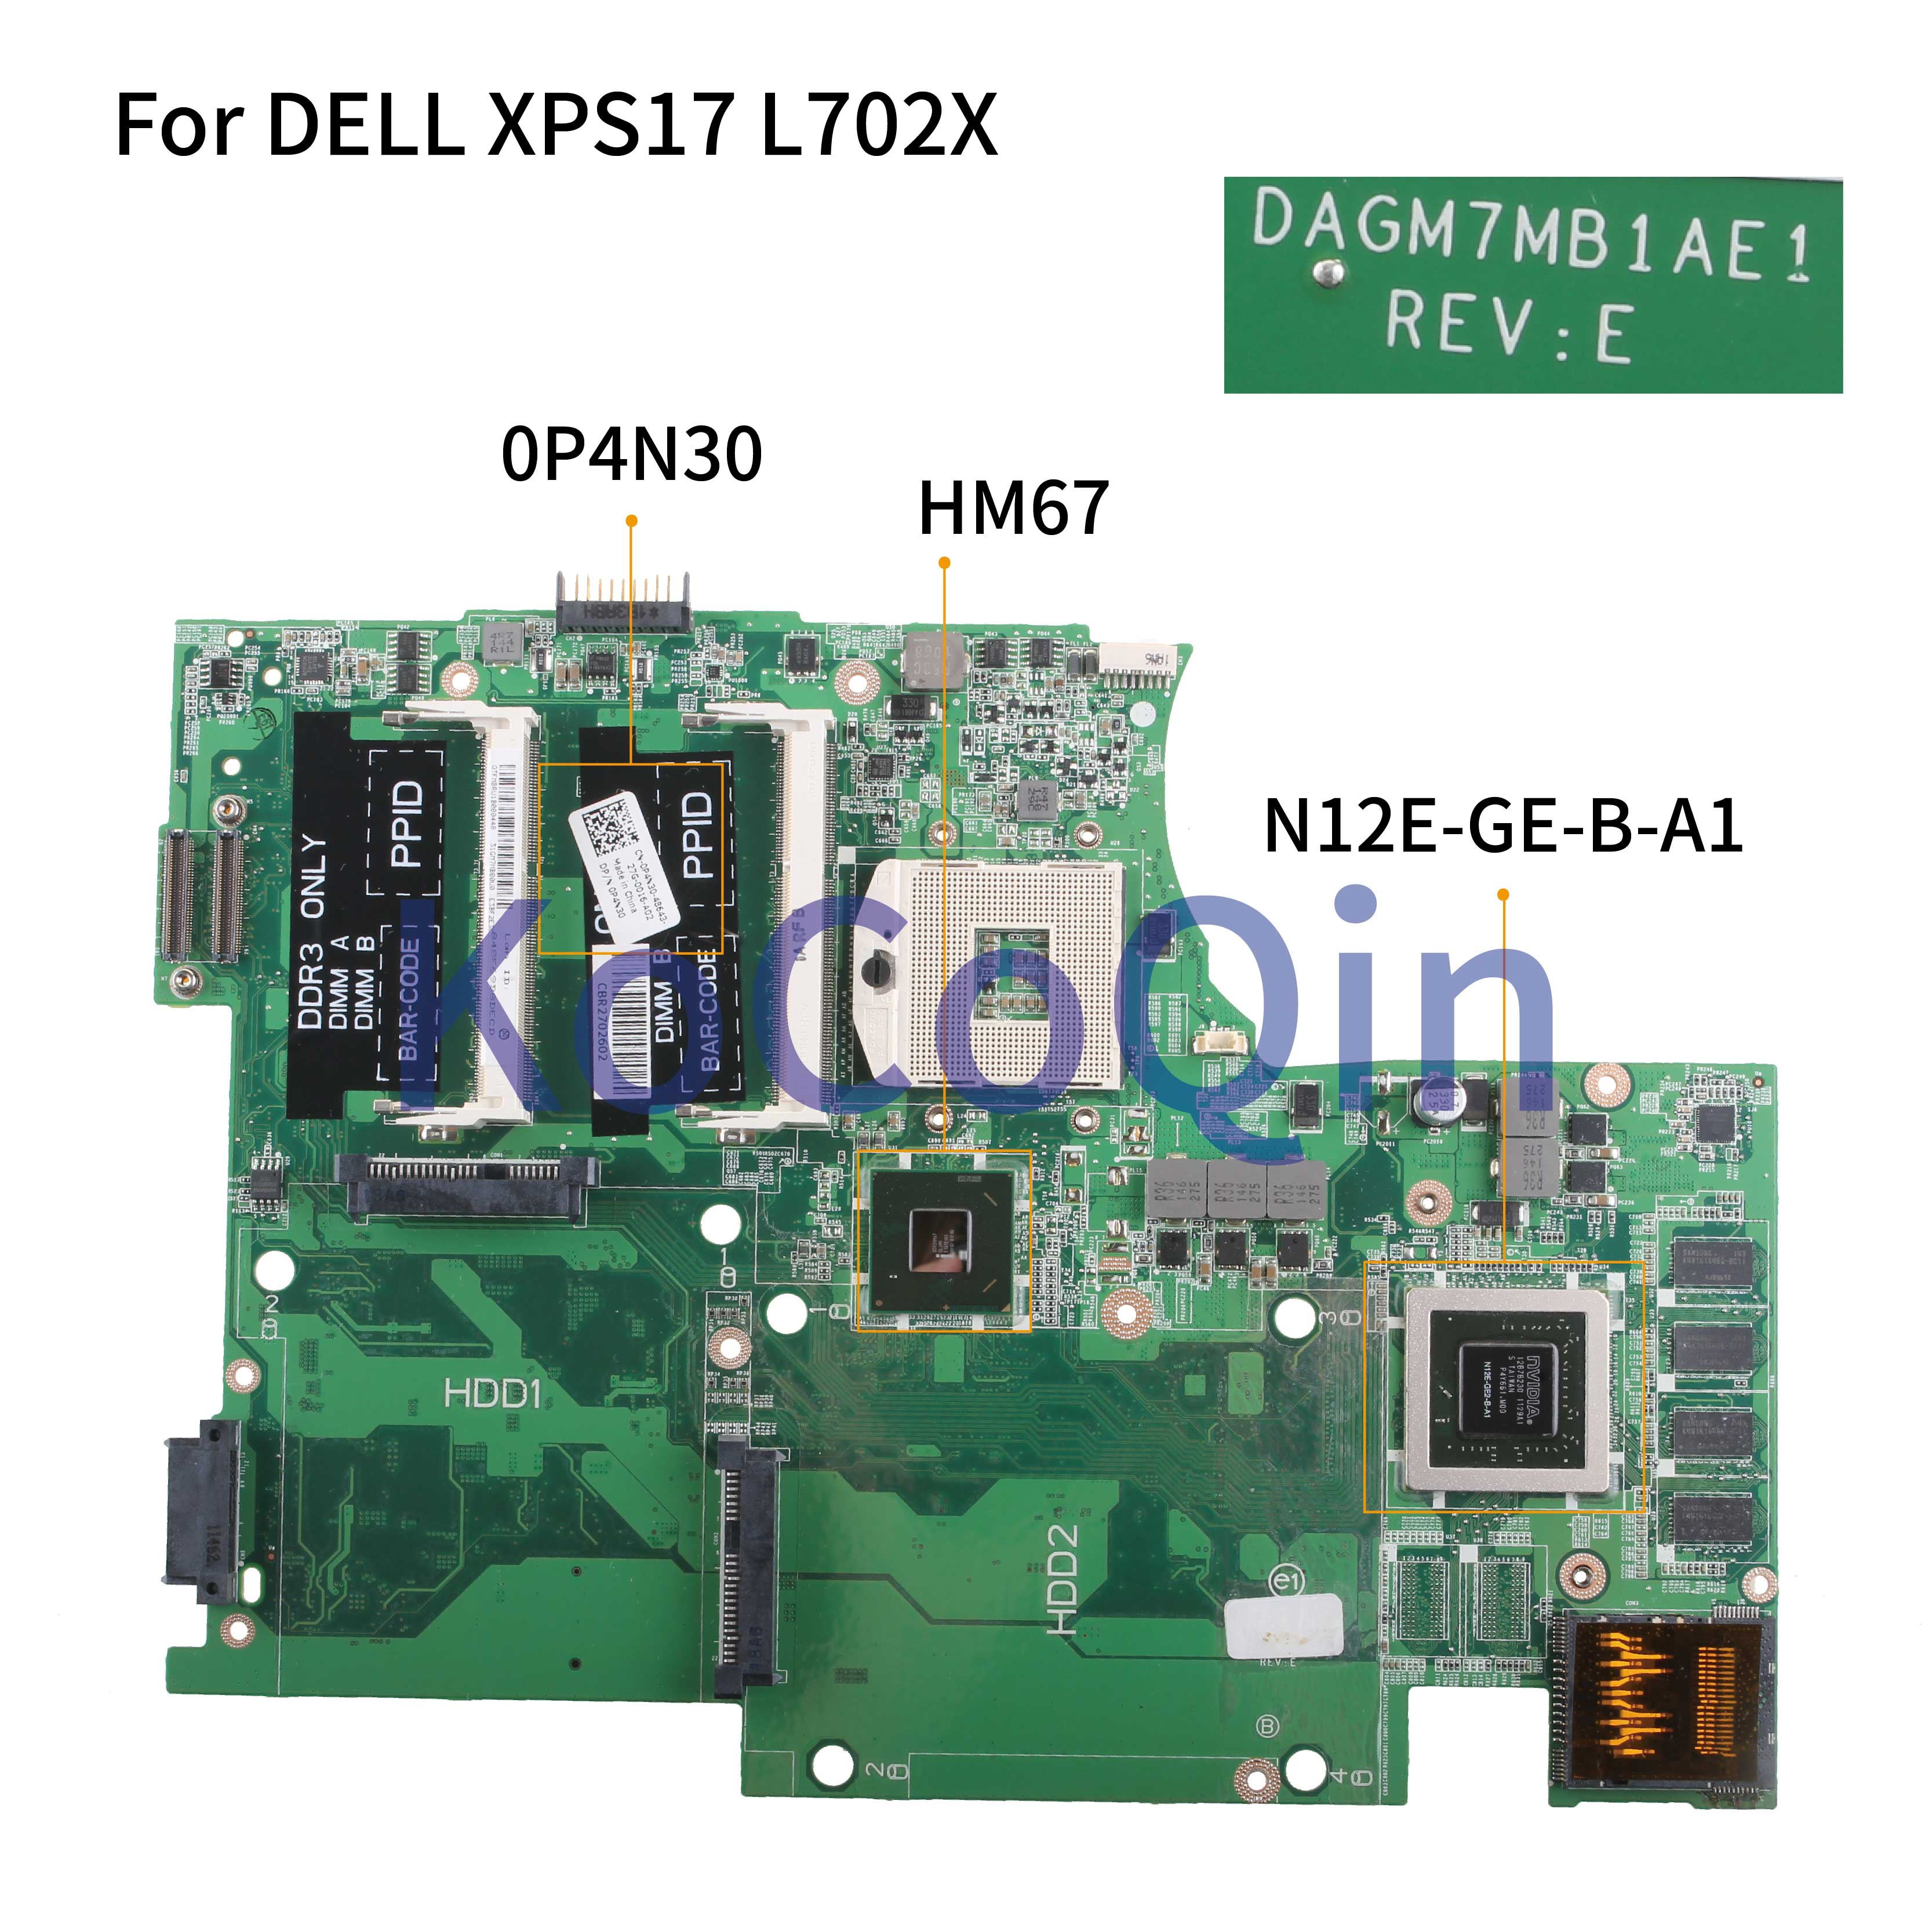 KoCoQin Laptop Motherboard For DELL XPS 17R L702X Mainboard CN-0P4N30  0P4N30 DAGM7MB1AE1 N12E-GE-B-A1 RAM 1G  HM67